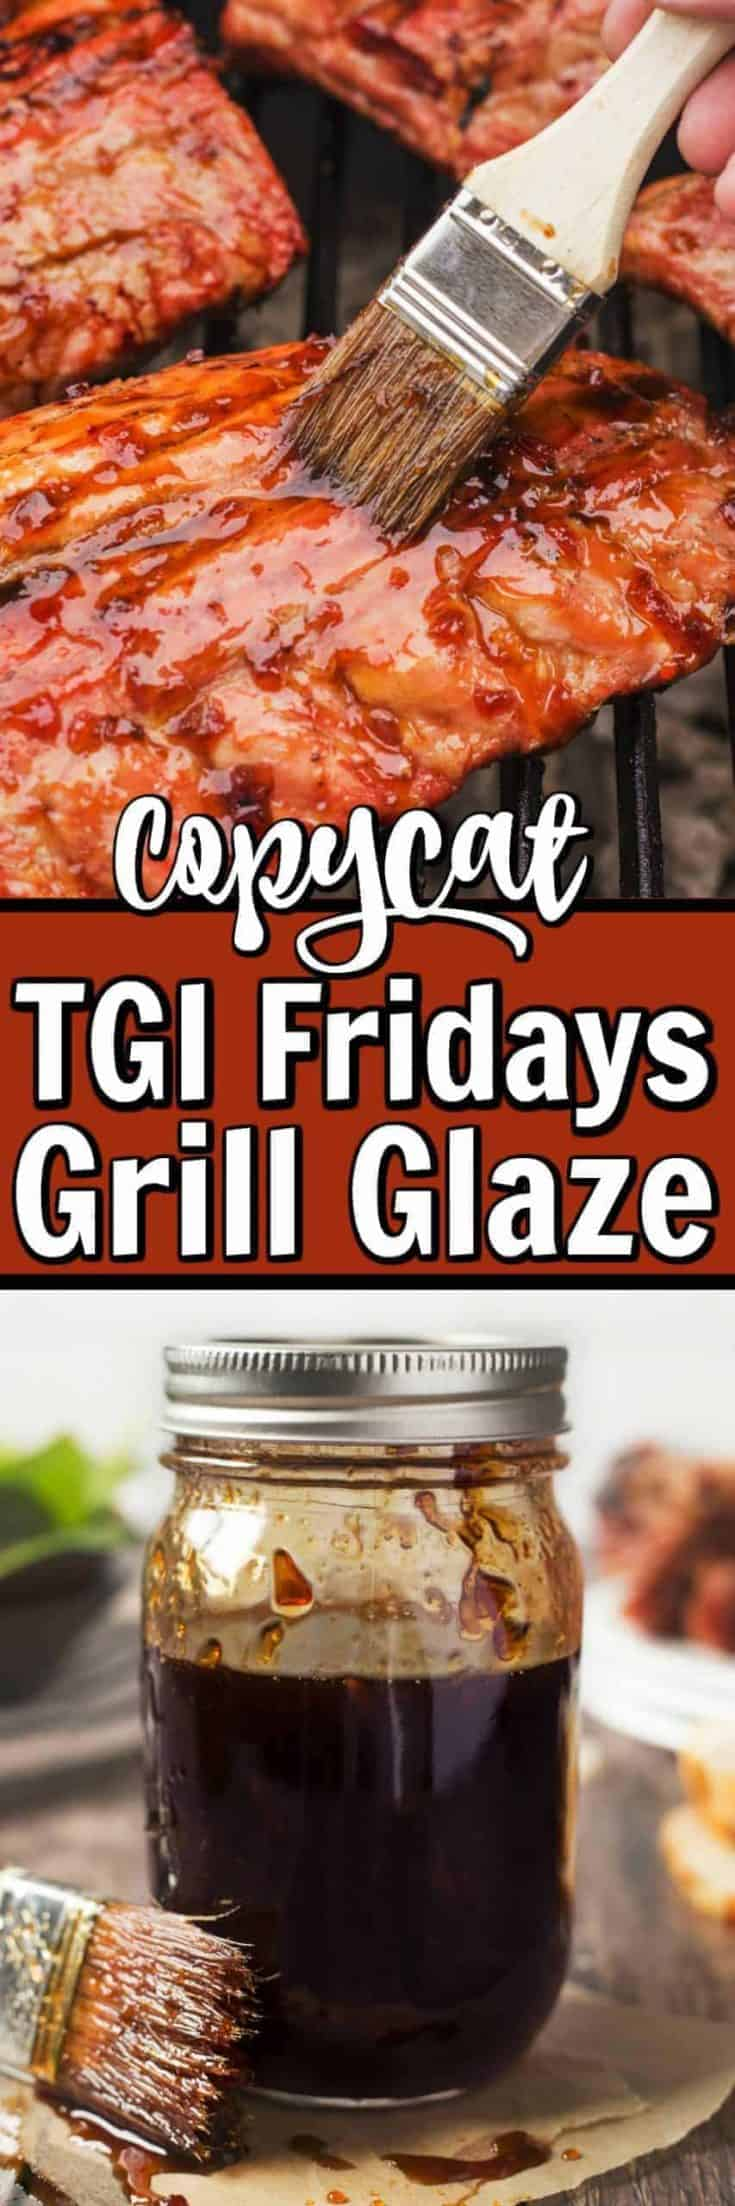 This Jack Daniels Grill Glaze is made famous from TGI Fridays restaurants and our copycat version can now be easily made at home!! #TGIFridays #grillglaze #BBQ